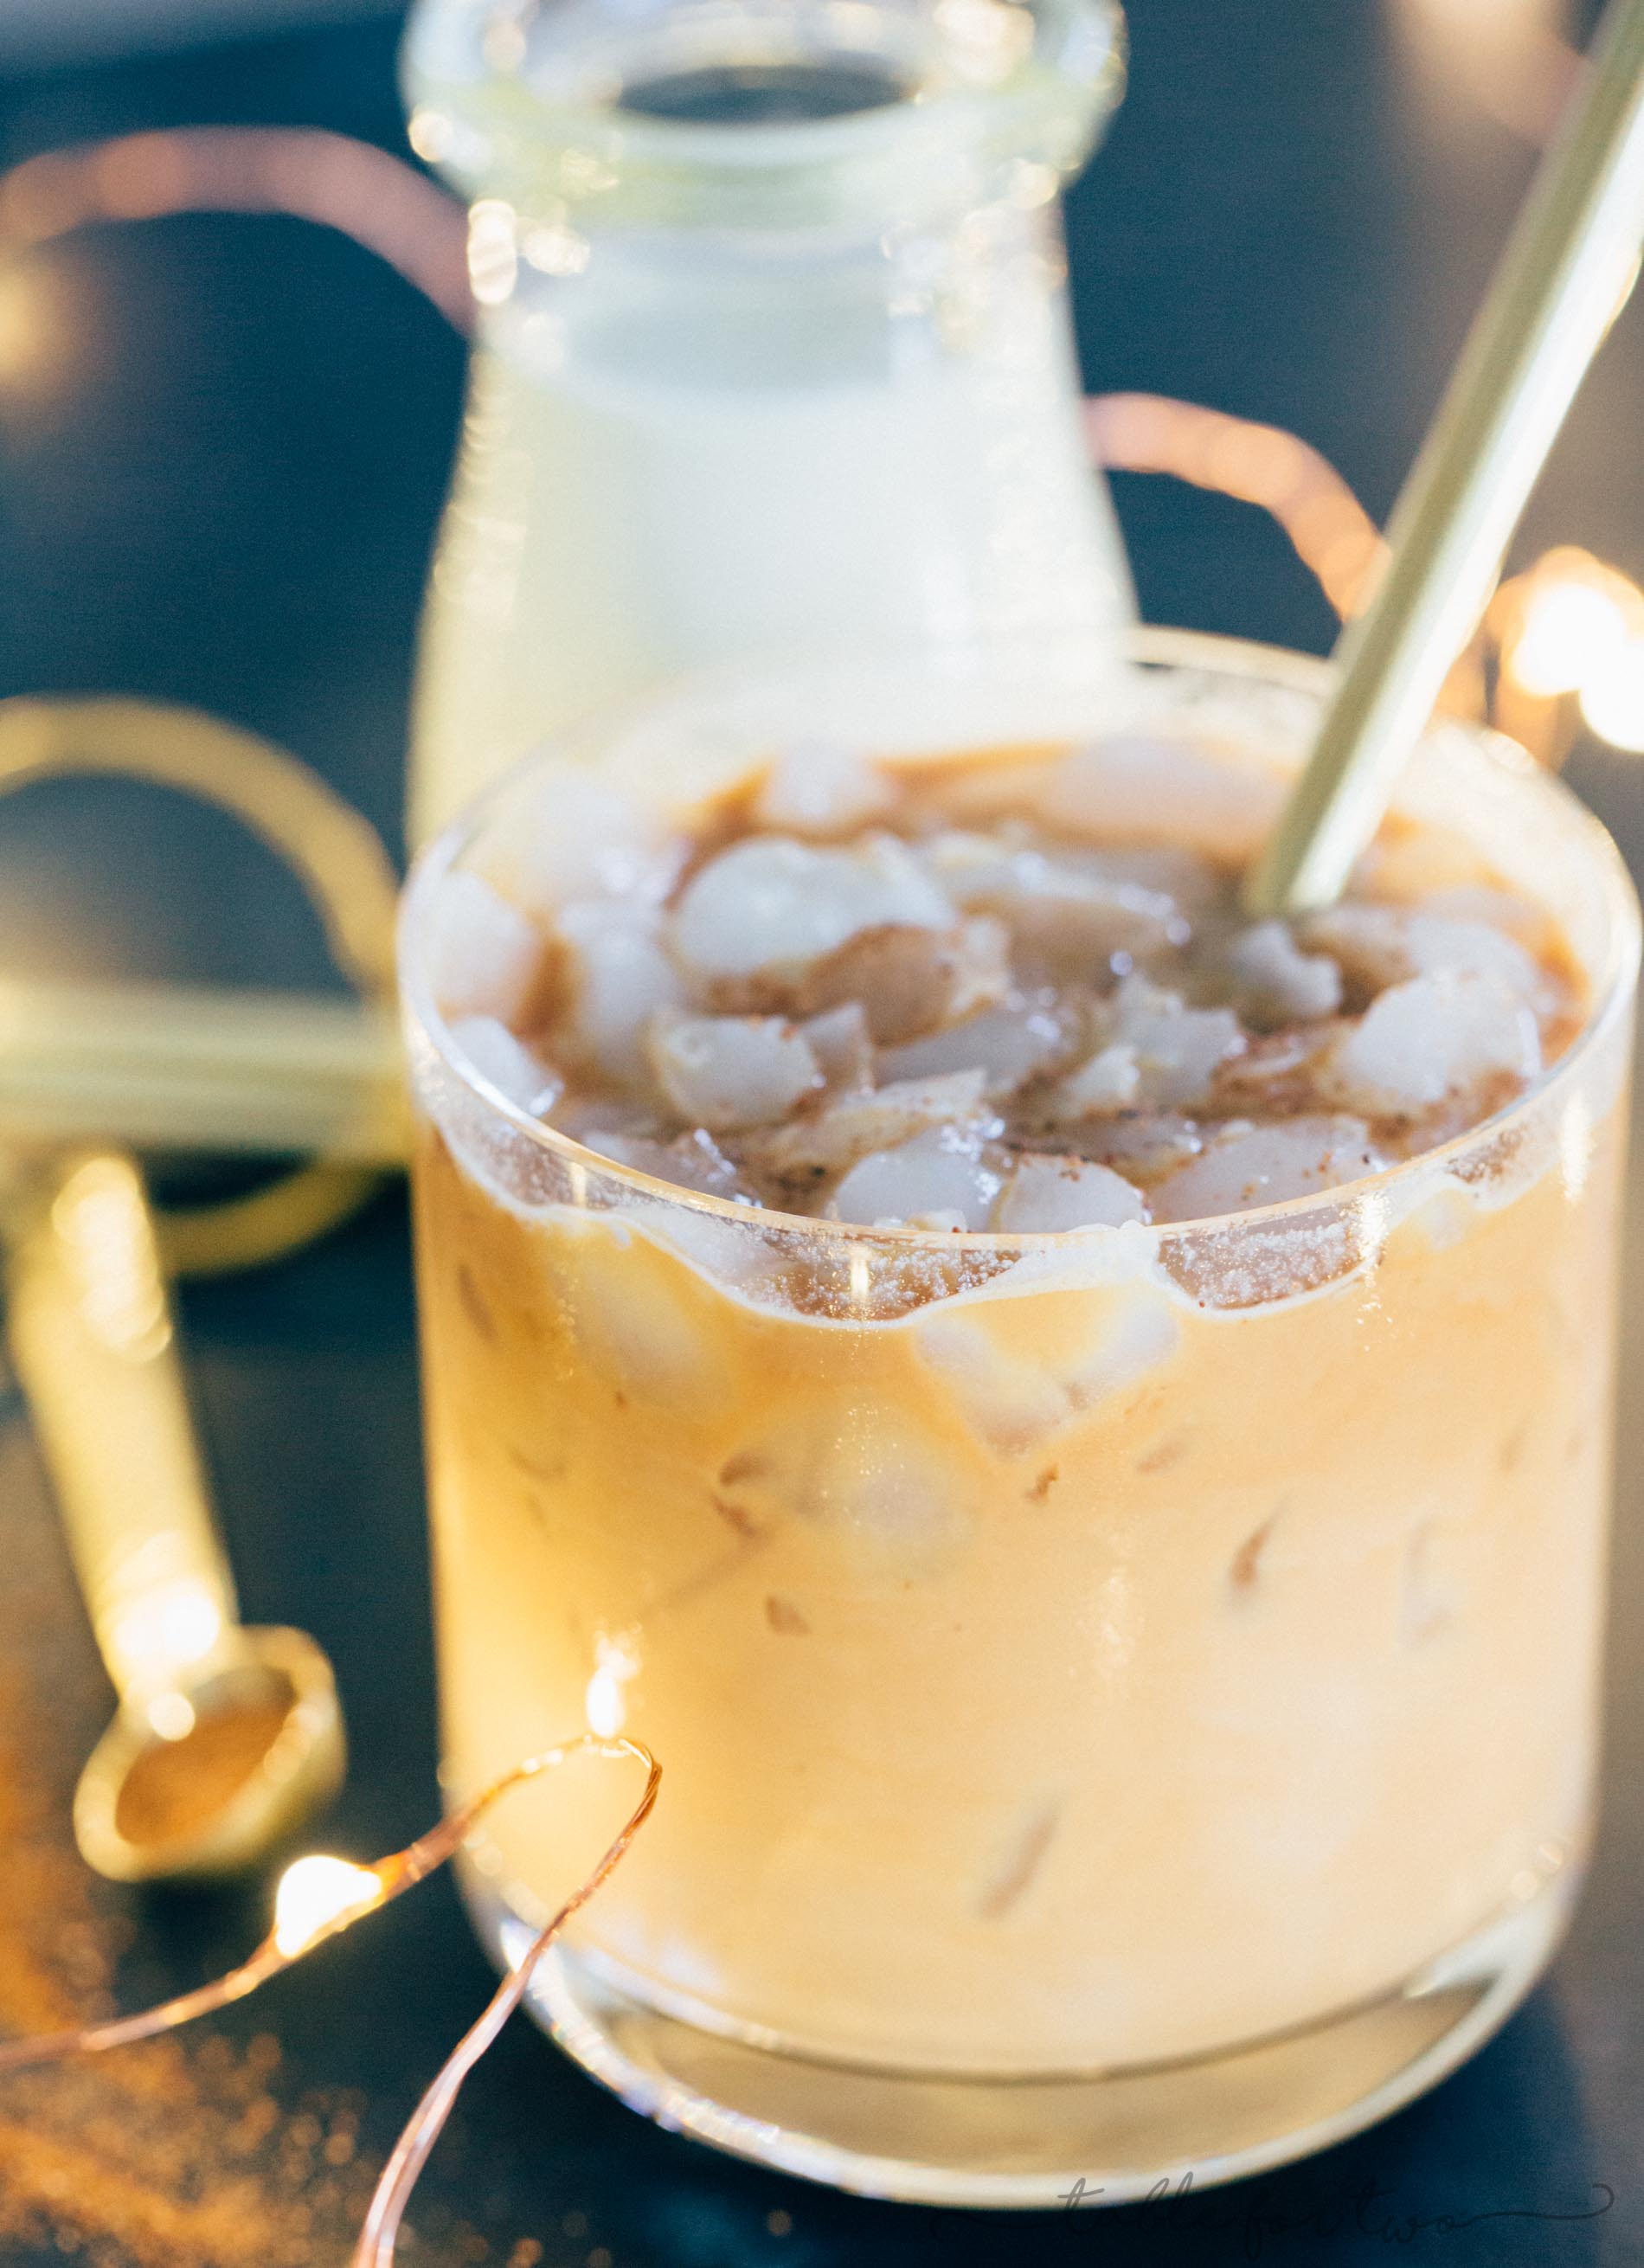 Need some pep in your step during the holidays? This iced eggnog latte is a festive and fun drink that will help with your energy levels throughout the day! Sip on this around the Christmas tree or in front of the fireplace. Anywhere you choose, it is sure to be creamy and delicious!